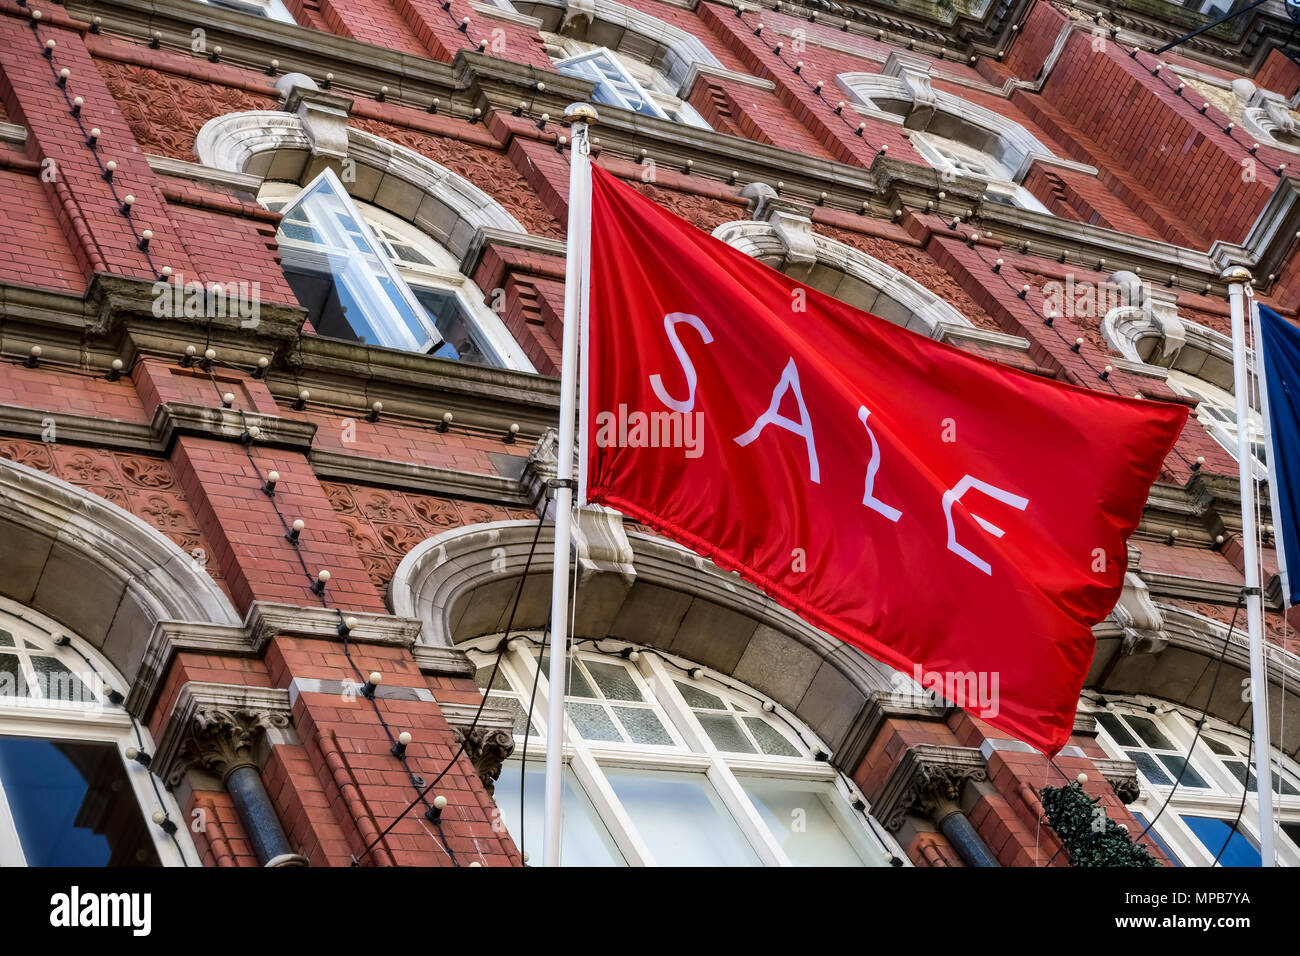 Shopping, sale red flag flying at Arnotts Department Store, brownstone building façade, on Henry Street. Dublin, Ireland. Close up, low angle view. - Stock Image